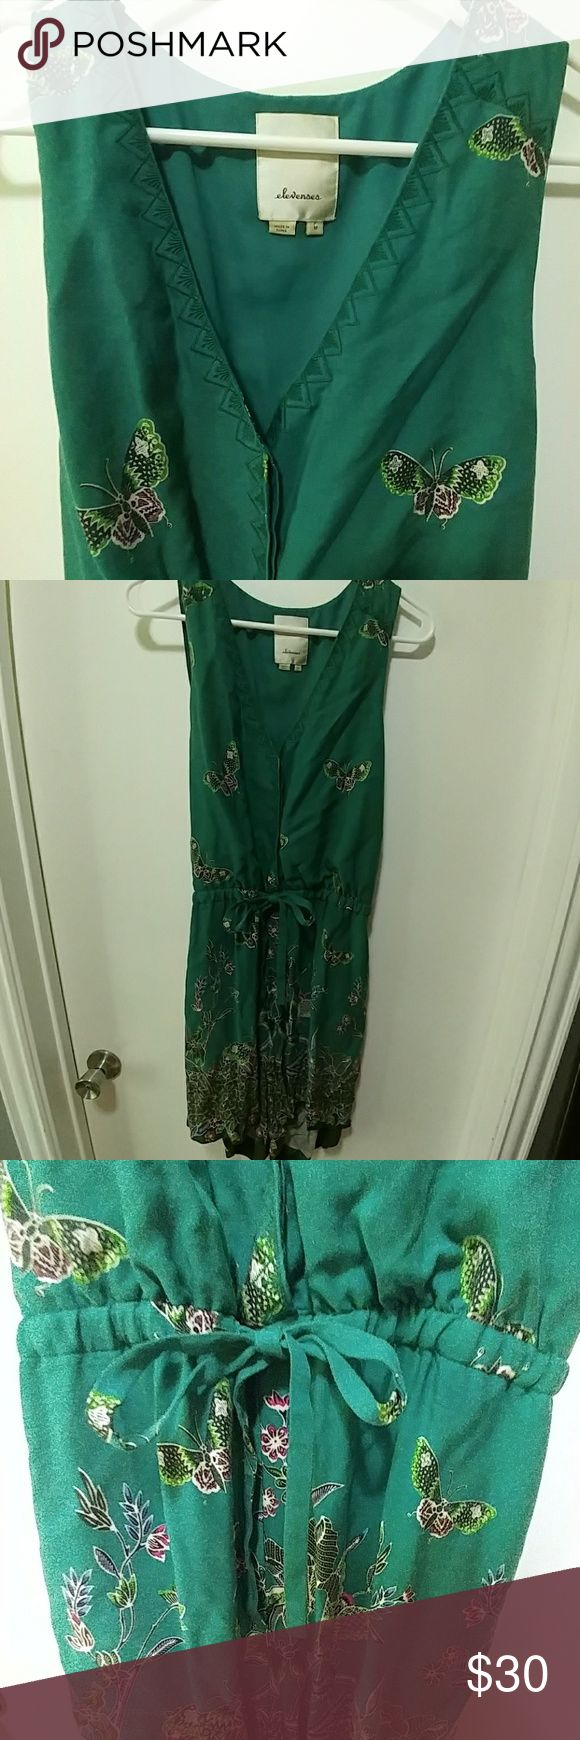 Anthropologie elevenses butterfly romper Darling little romper from elevenses in kelly green with floral and butterfly print. Tie and sinch waist line and button down front. Elastic waist band in back for shorts part. Fits tts imo and has a super cute cross back flap detail in back see photos. Anthropologie Pants Jumpsuits & Rompers